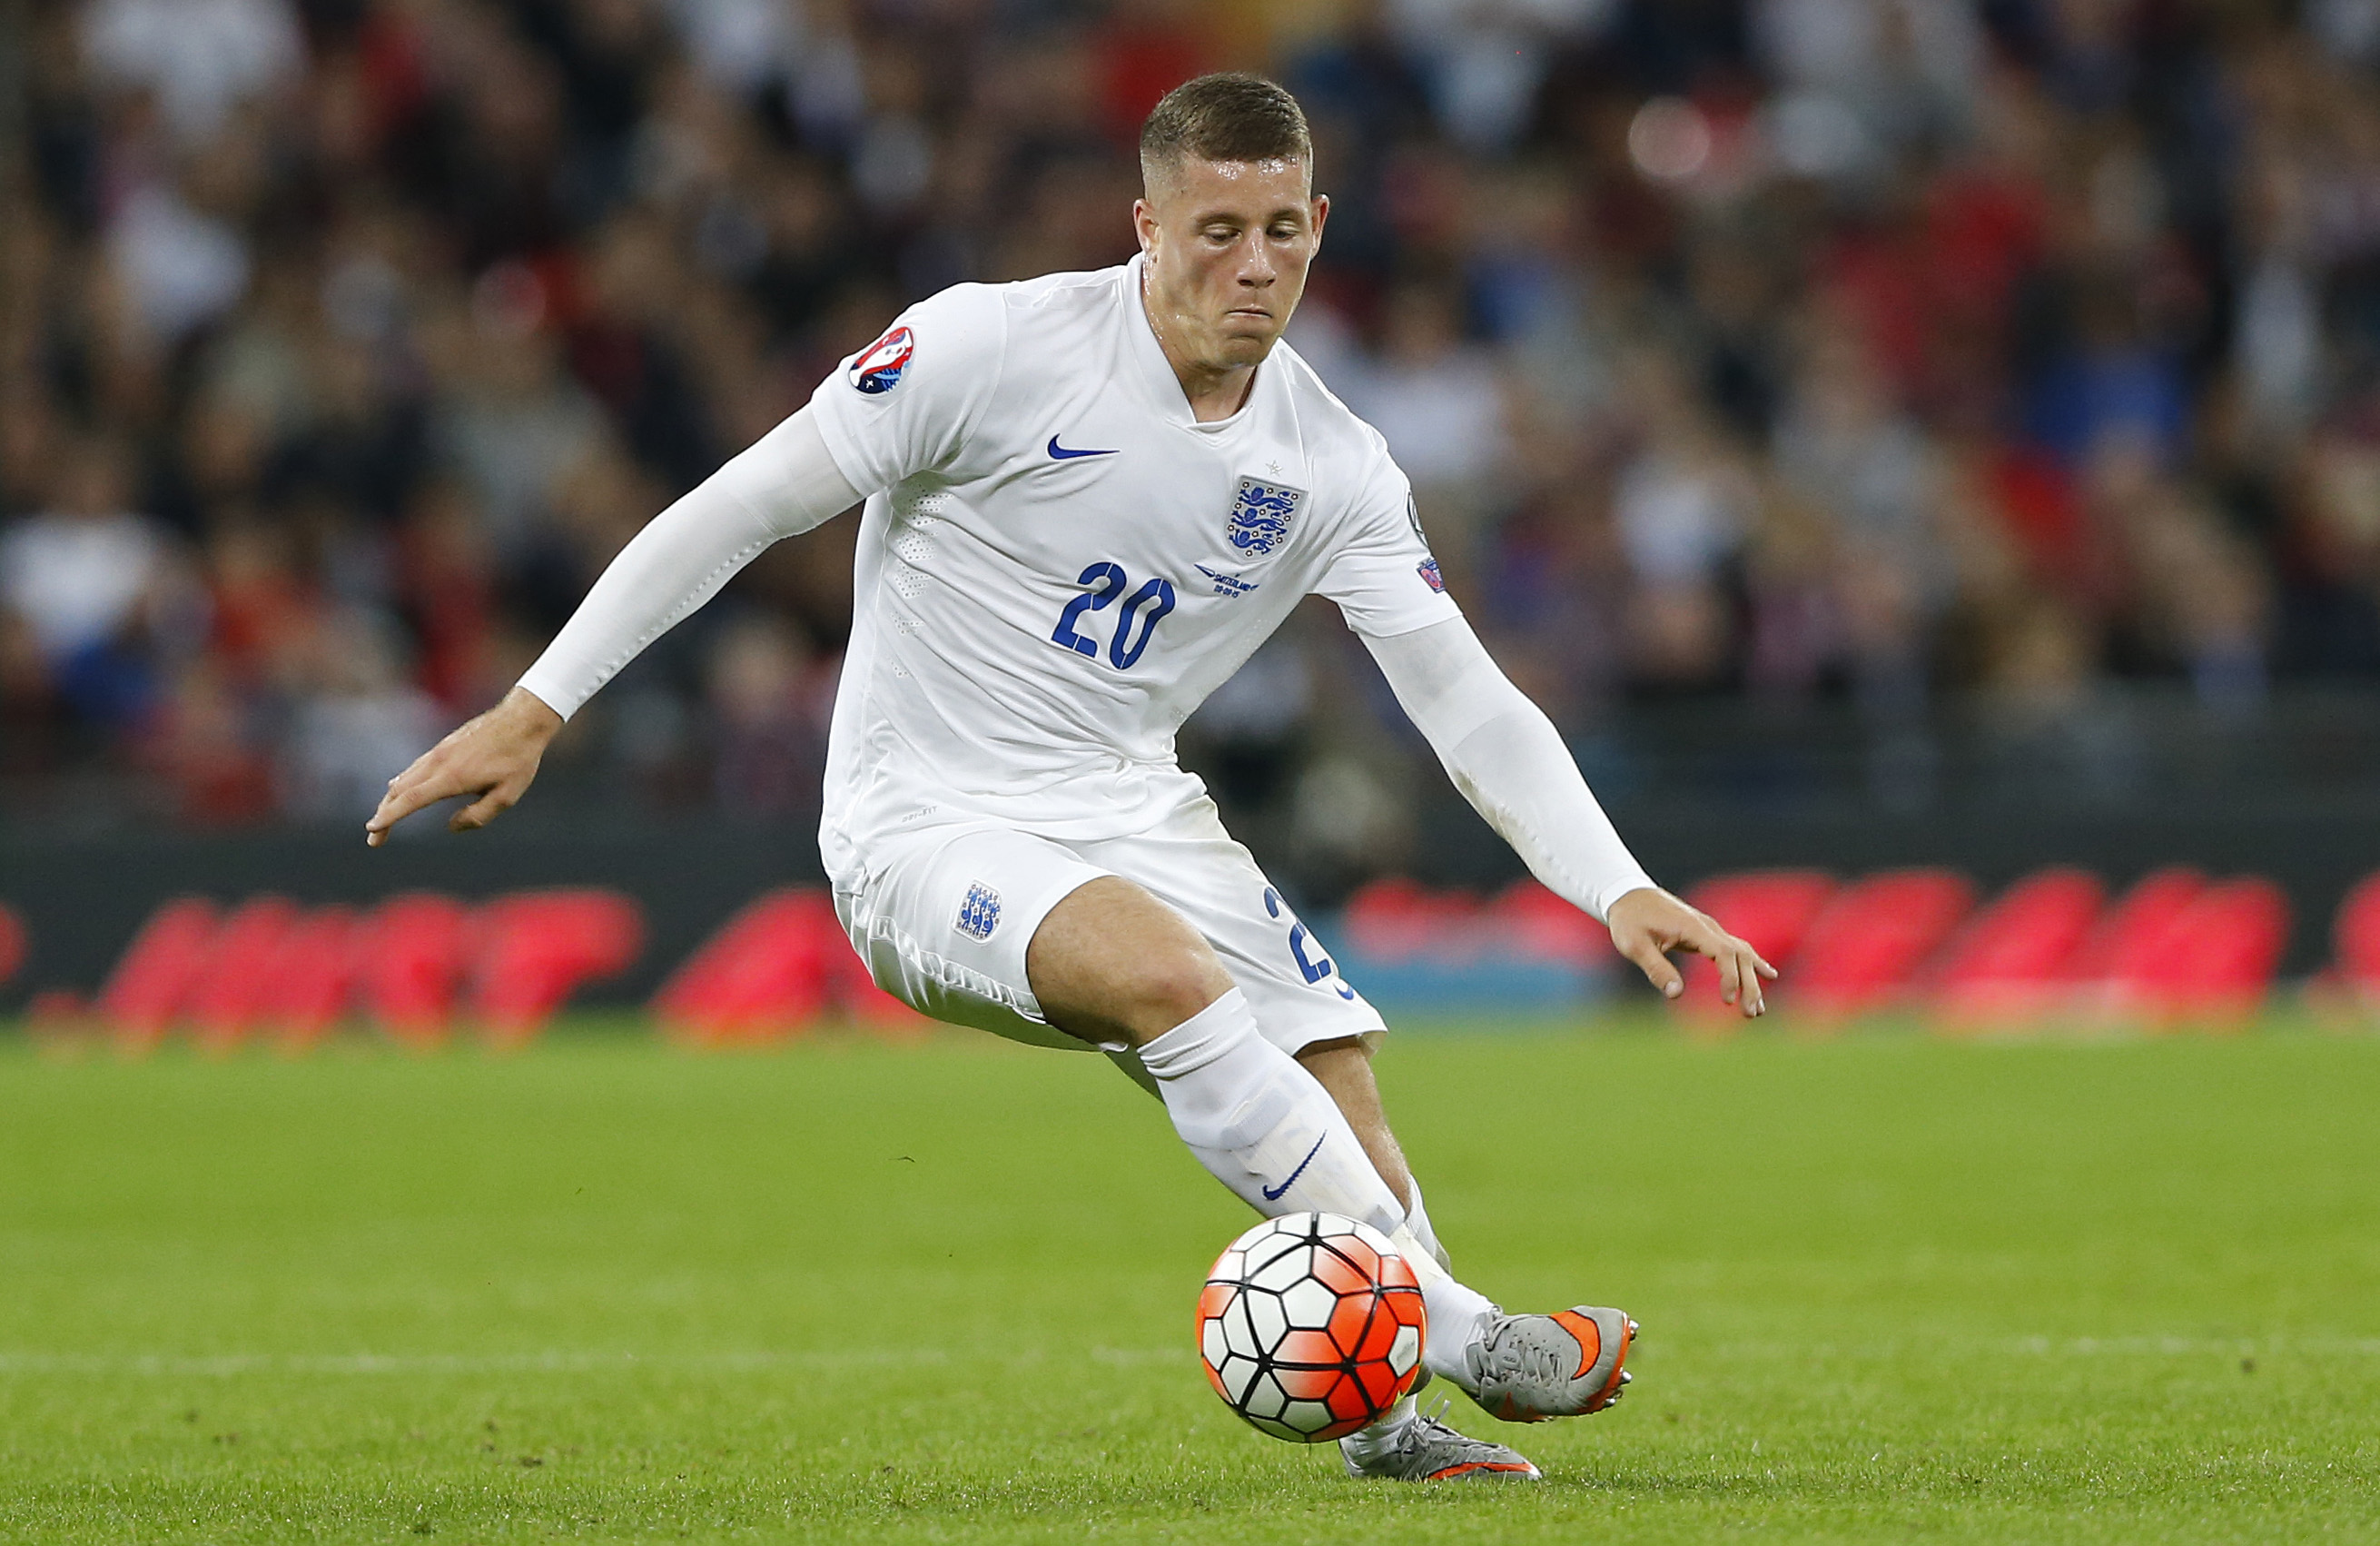 Football - England v Switzerland - UEFA Euro 2016 Qualifying Group E - Wembley Stadium, London, England - 8/9/15nEngland's Ross Barkley in action nAction Images via Reuters / Carl RecinenLivepicnEDITORIAL USE ONLY.